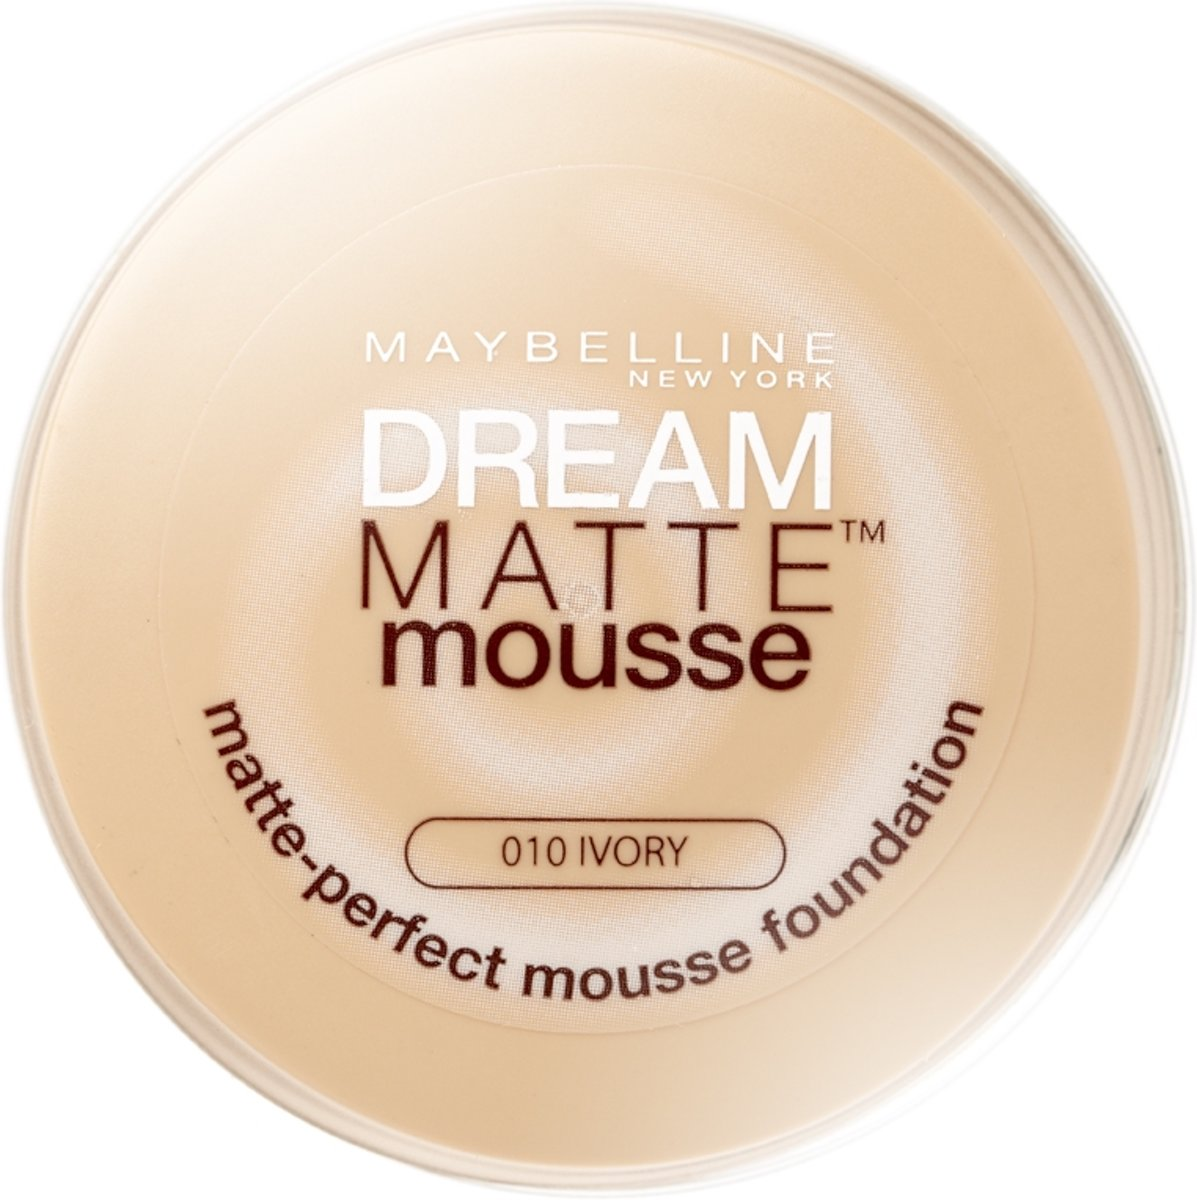 Maybelline Dream Matte Mousse -  010 Ivory - Foundation